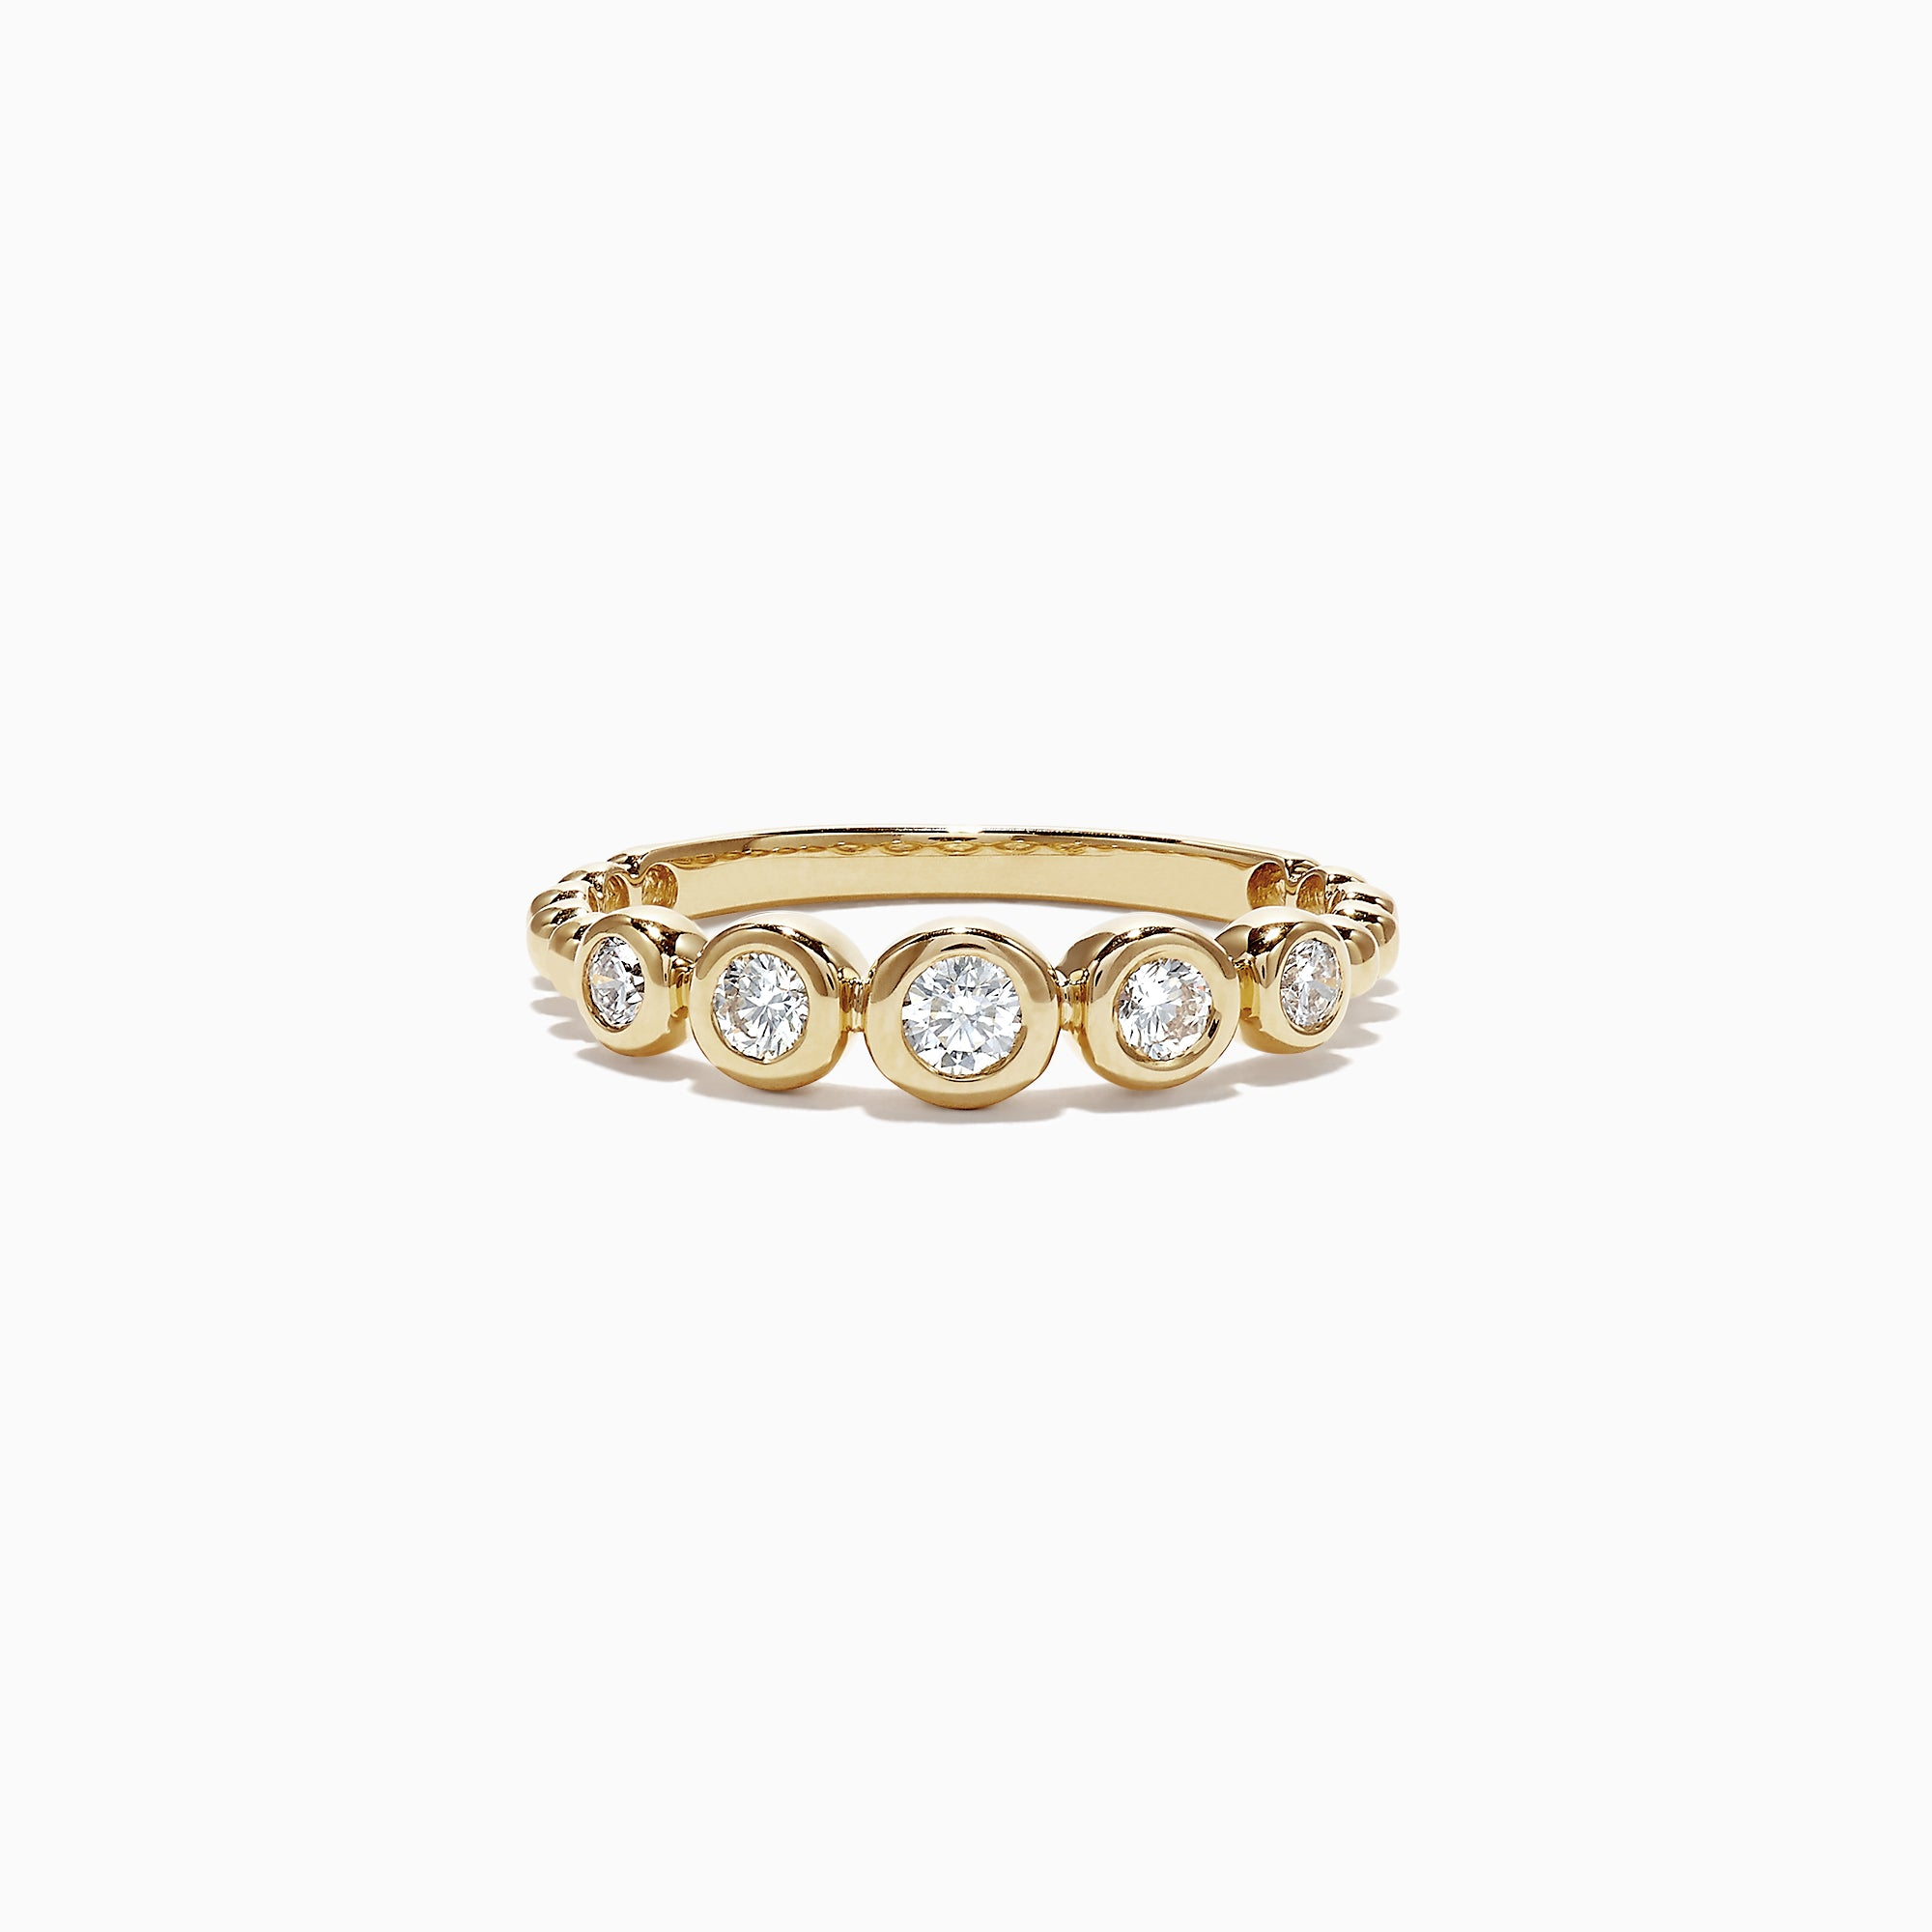 Effy D'Oro 14K Yellow Gold Bezel Set Diamond Ring, 0.33 TCW